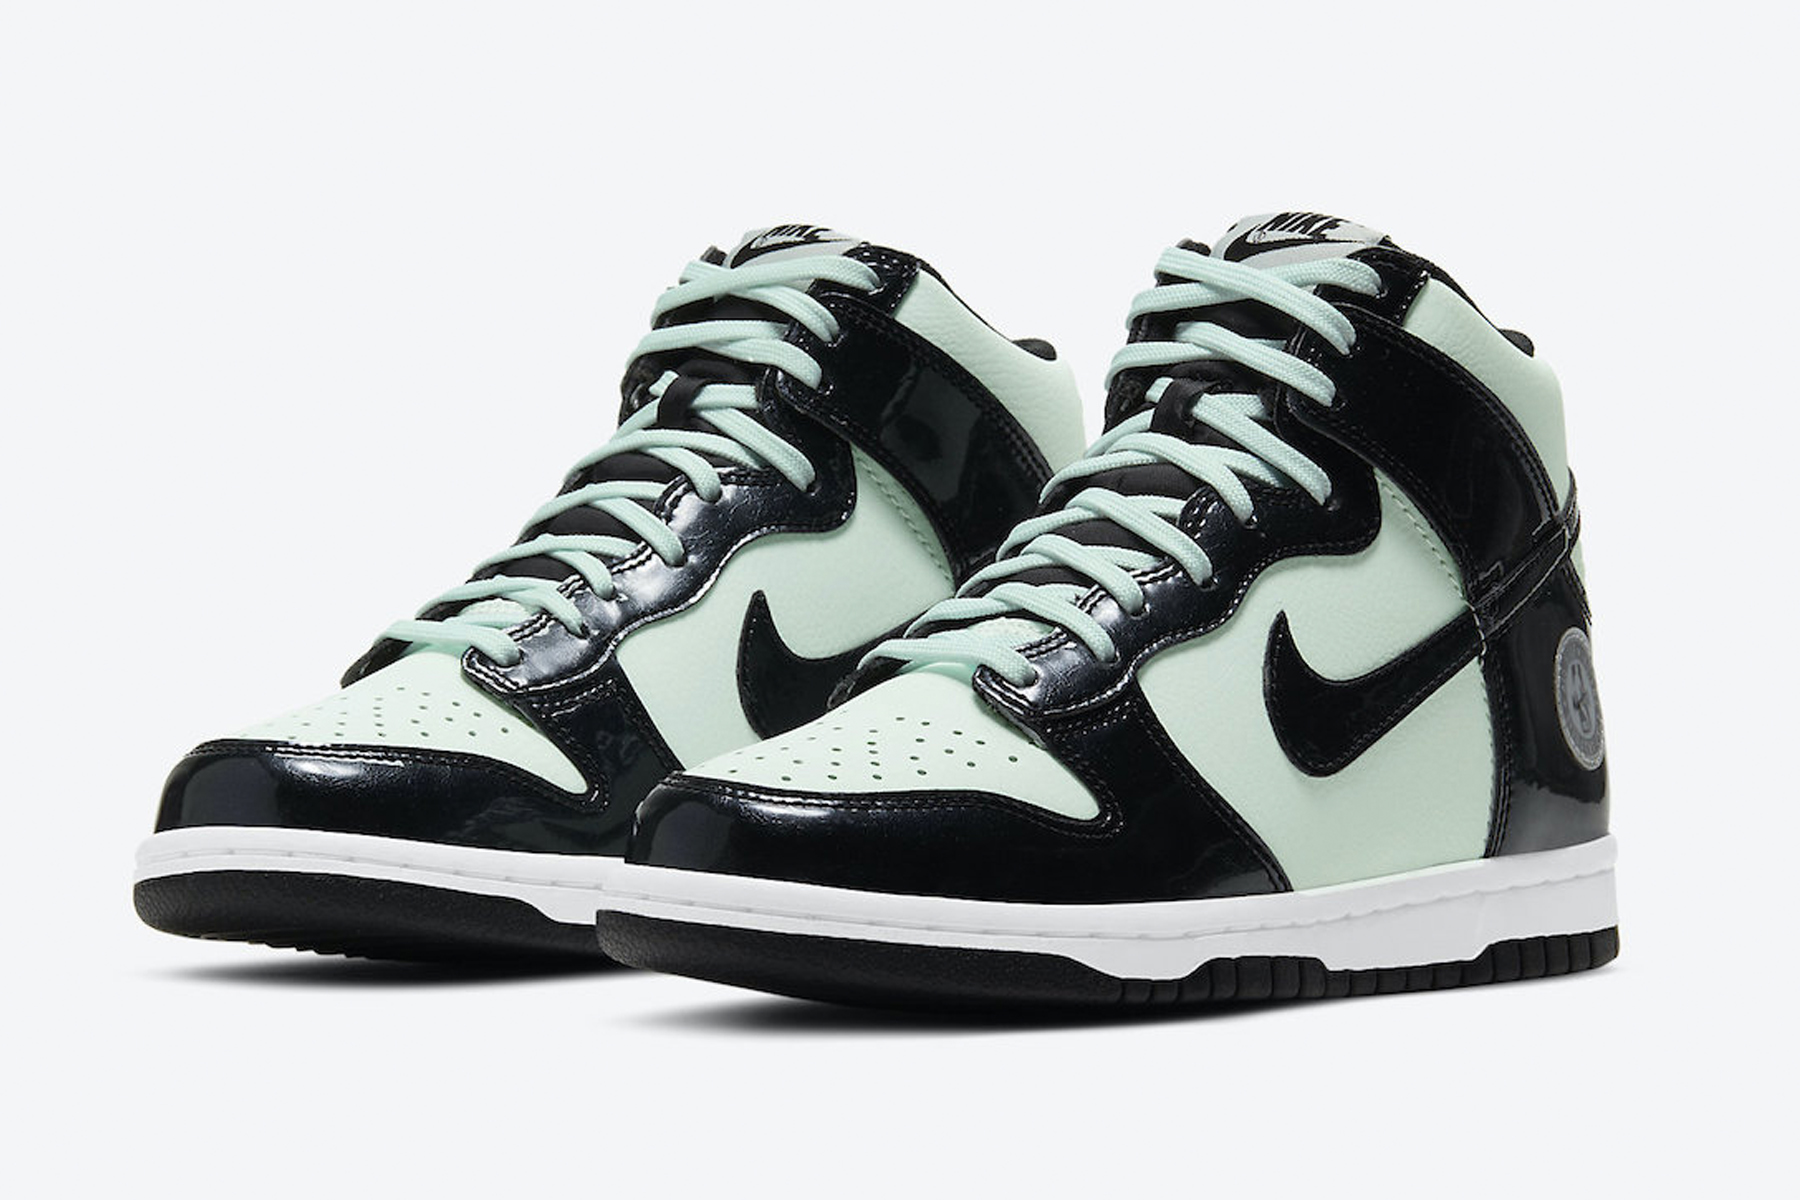 率先预览 Nike Dunk High「All-Star」全明星赛限定配色